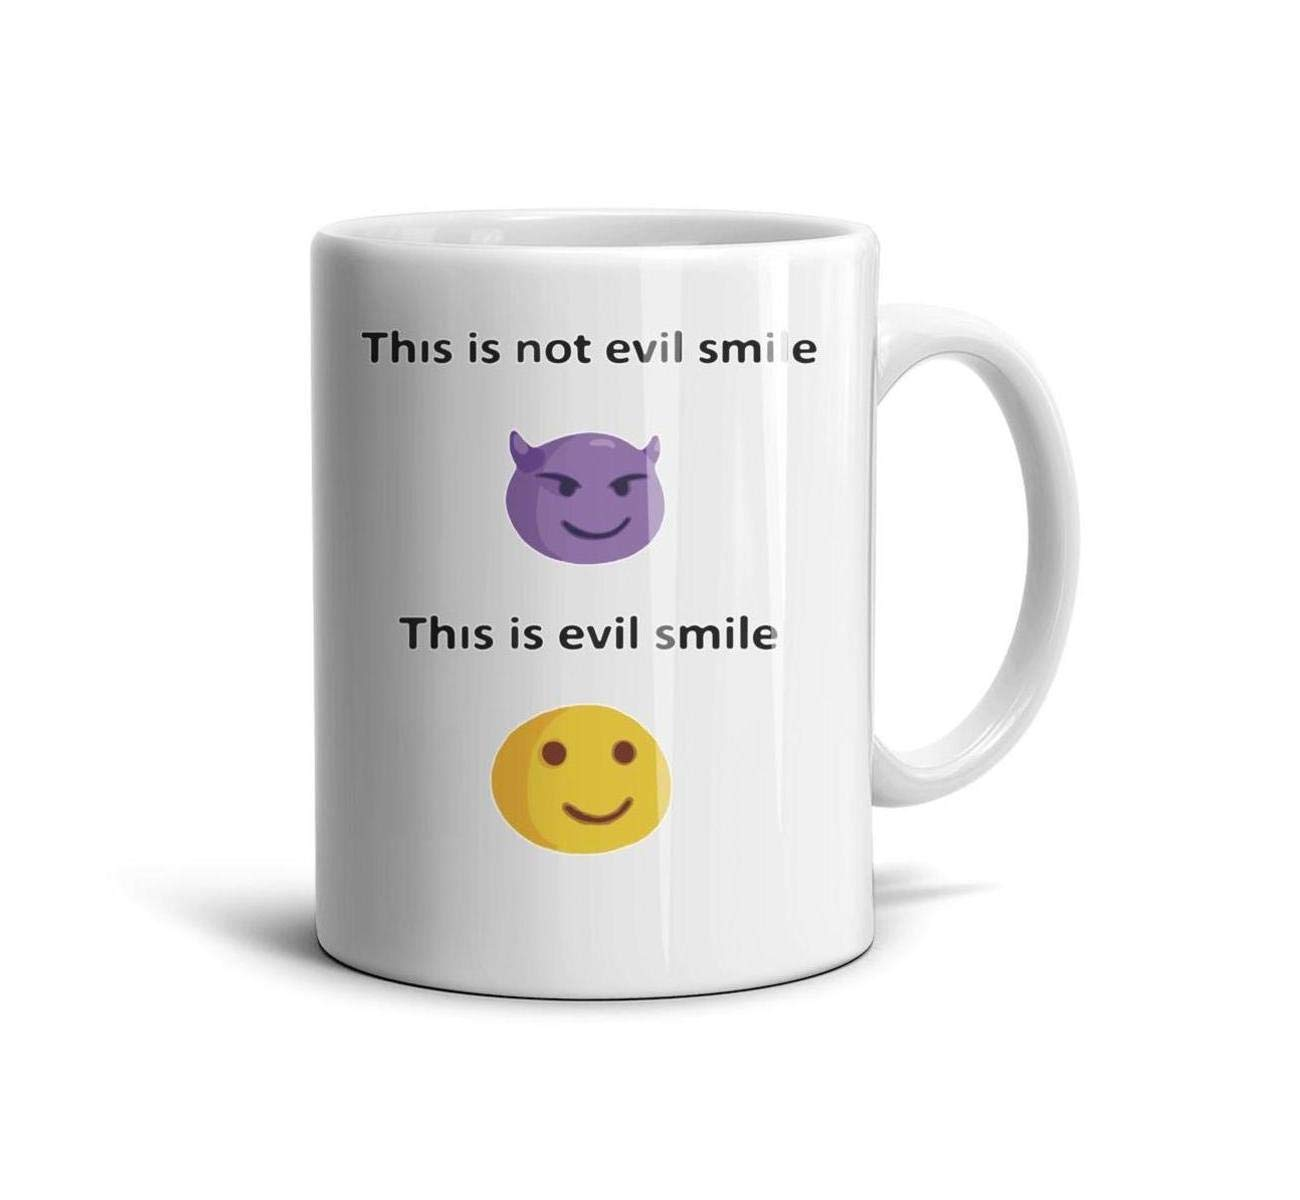 devrrssx This is NOT Evil AMILE THIE is Evil Smile Cool Coffee Mug Set Great Gift 1 Set for Office and Home for sonMaximum Capacity 13.5oz